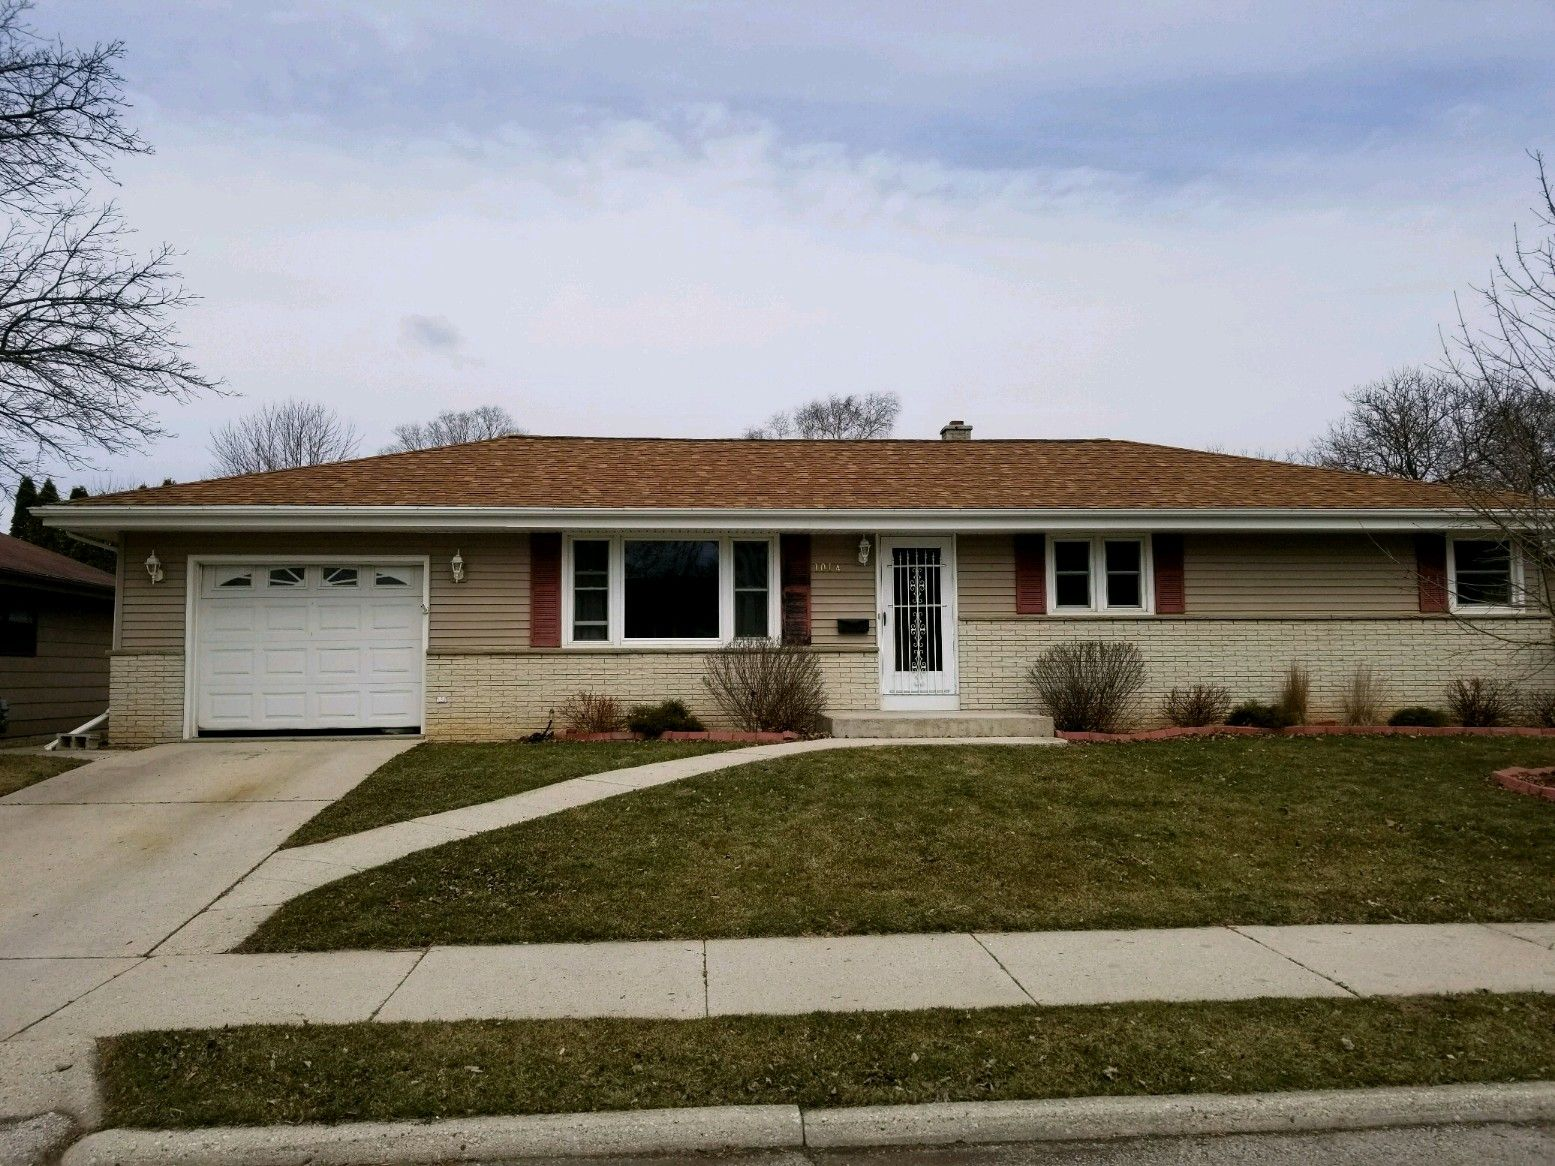 Homes For Sale By Owner >> Sheboygan By Owner For Sale By Owner Homes Property Real Estate